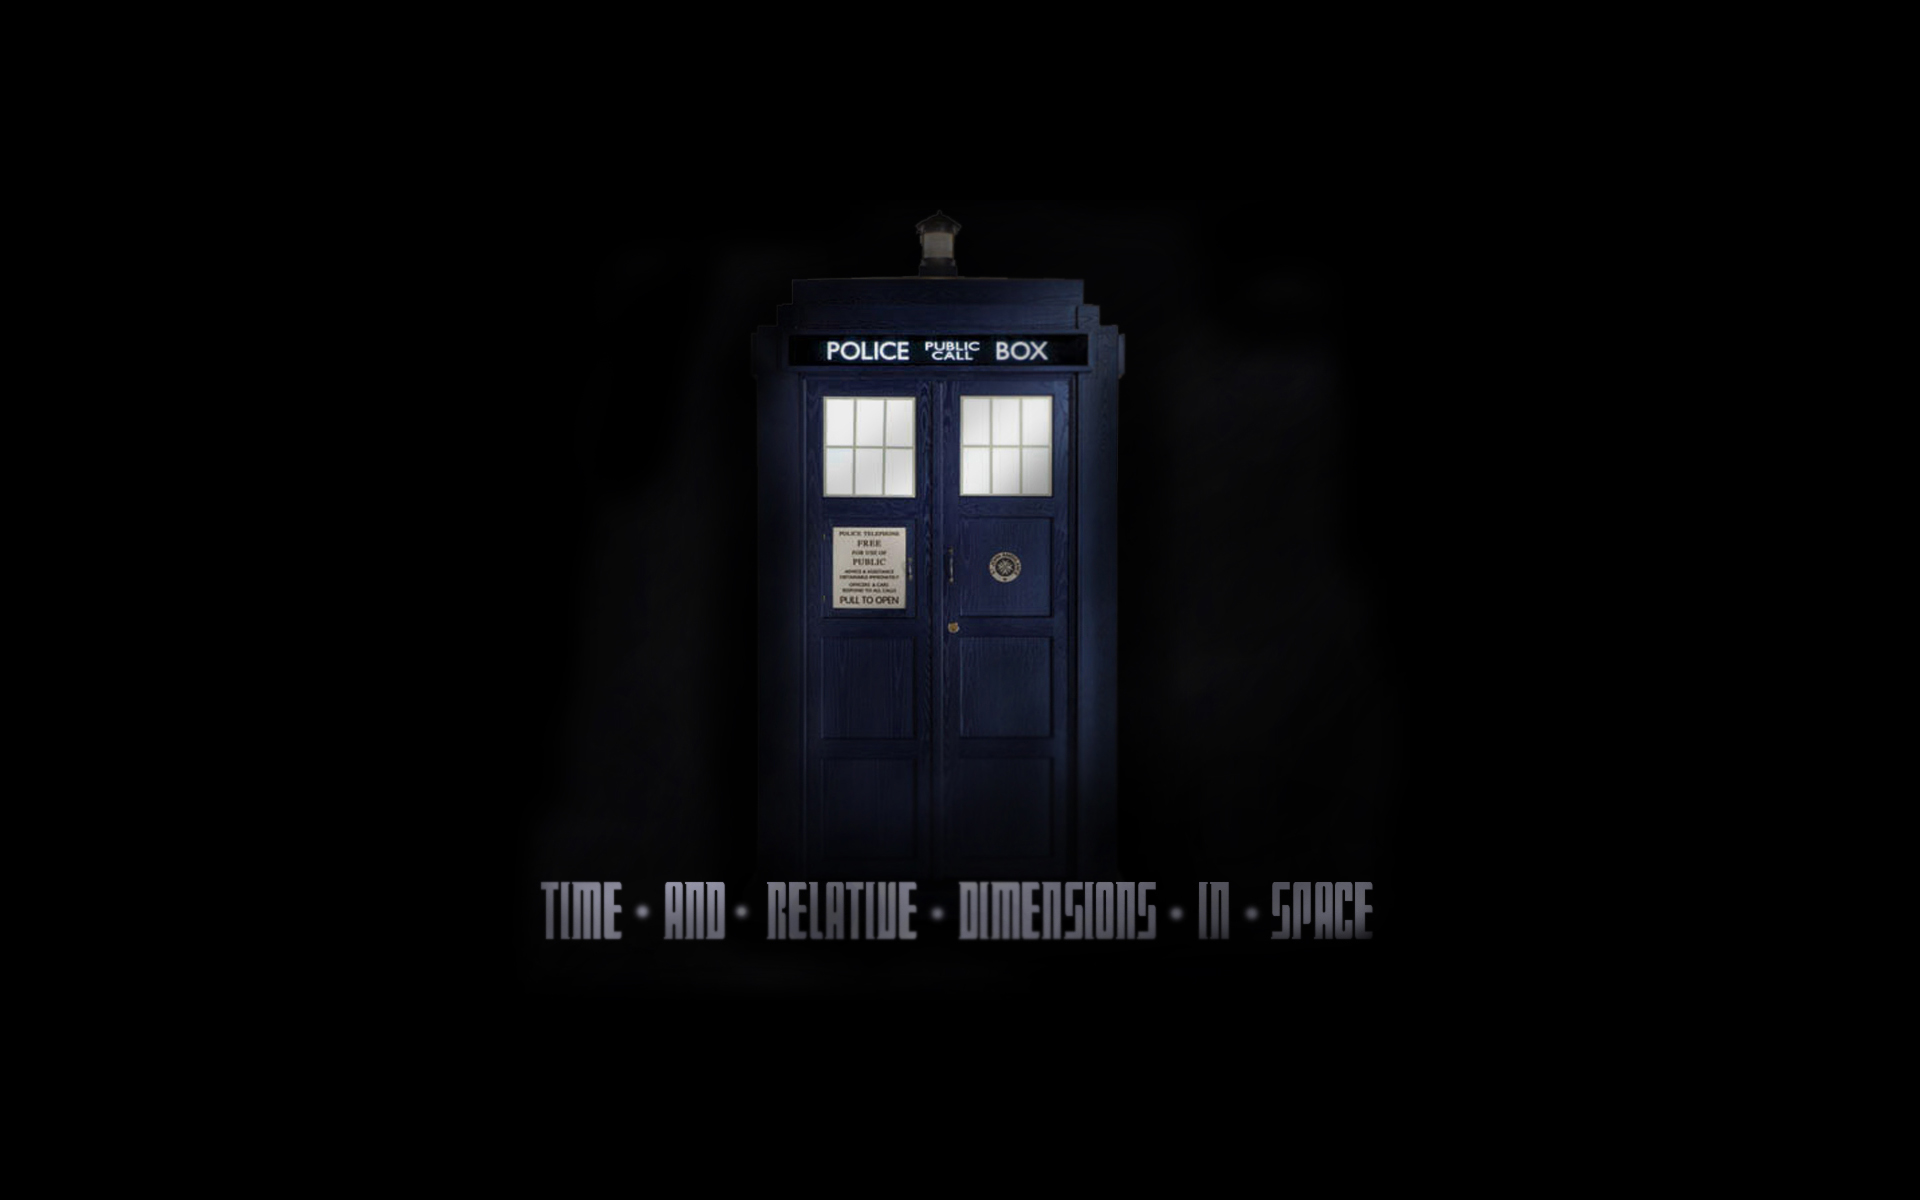 Wallpapers TV Doctor Who Wallpaper 1920x1200